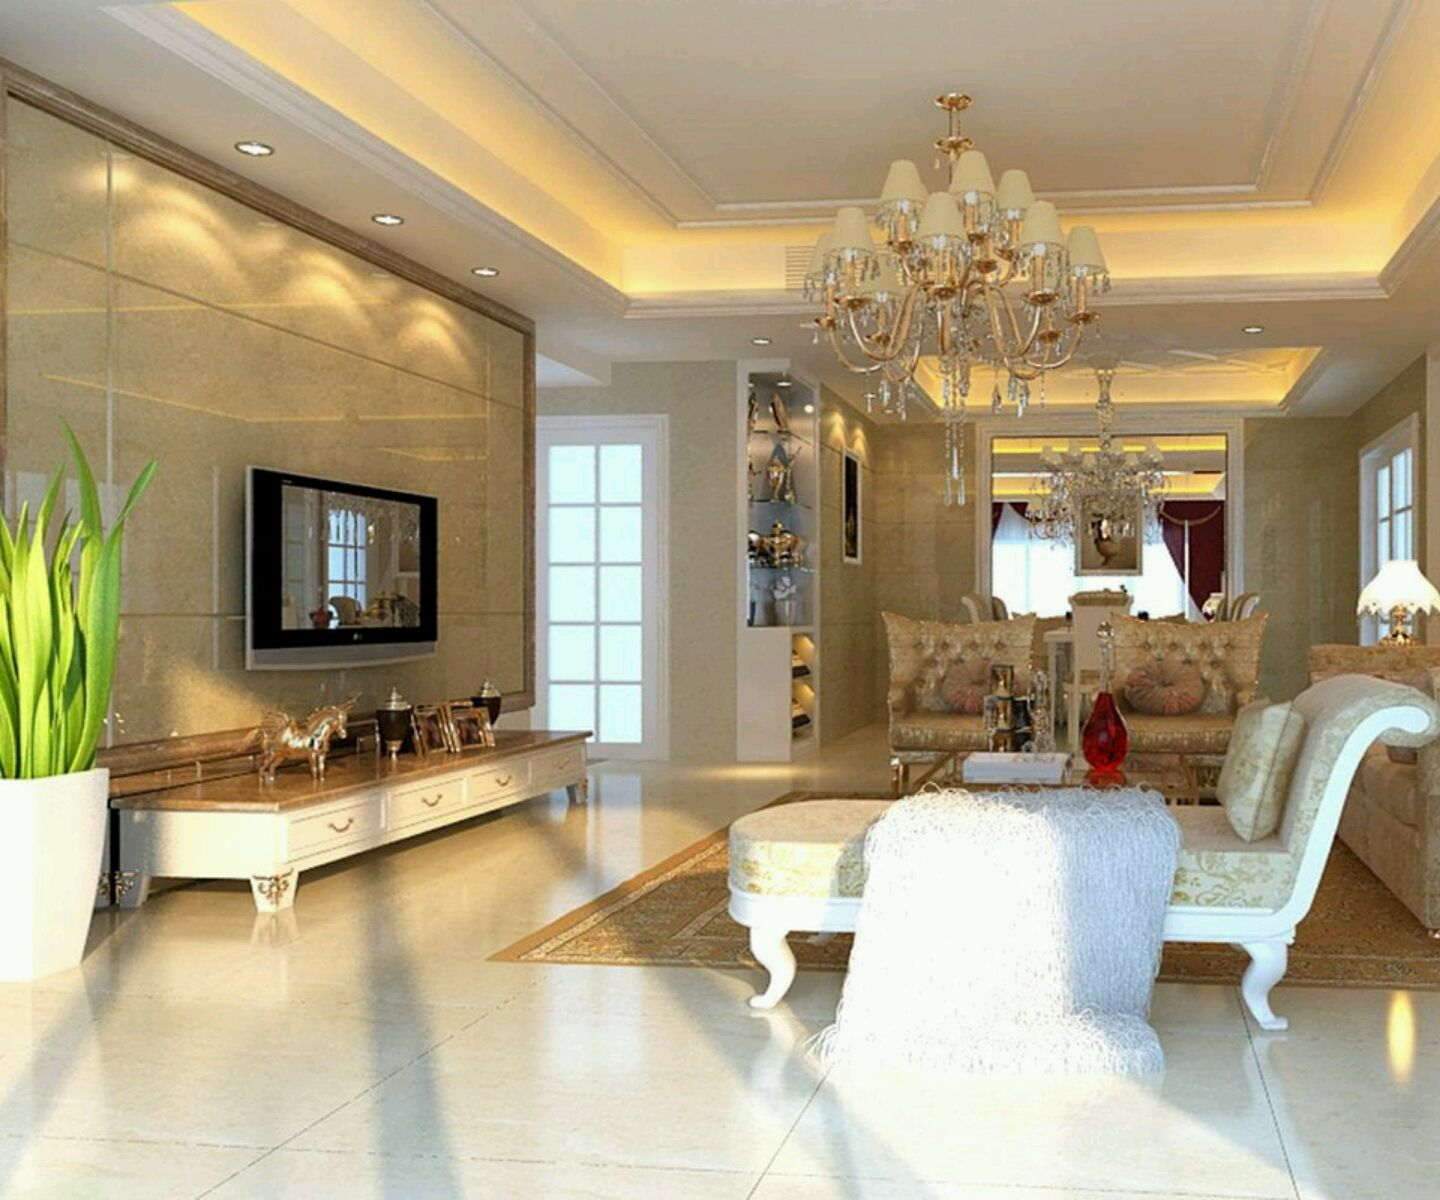 luxury homes interior decoration living room designs ideas - New Home Design Ideas